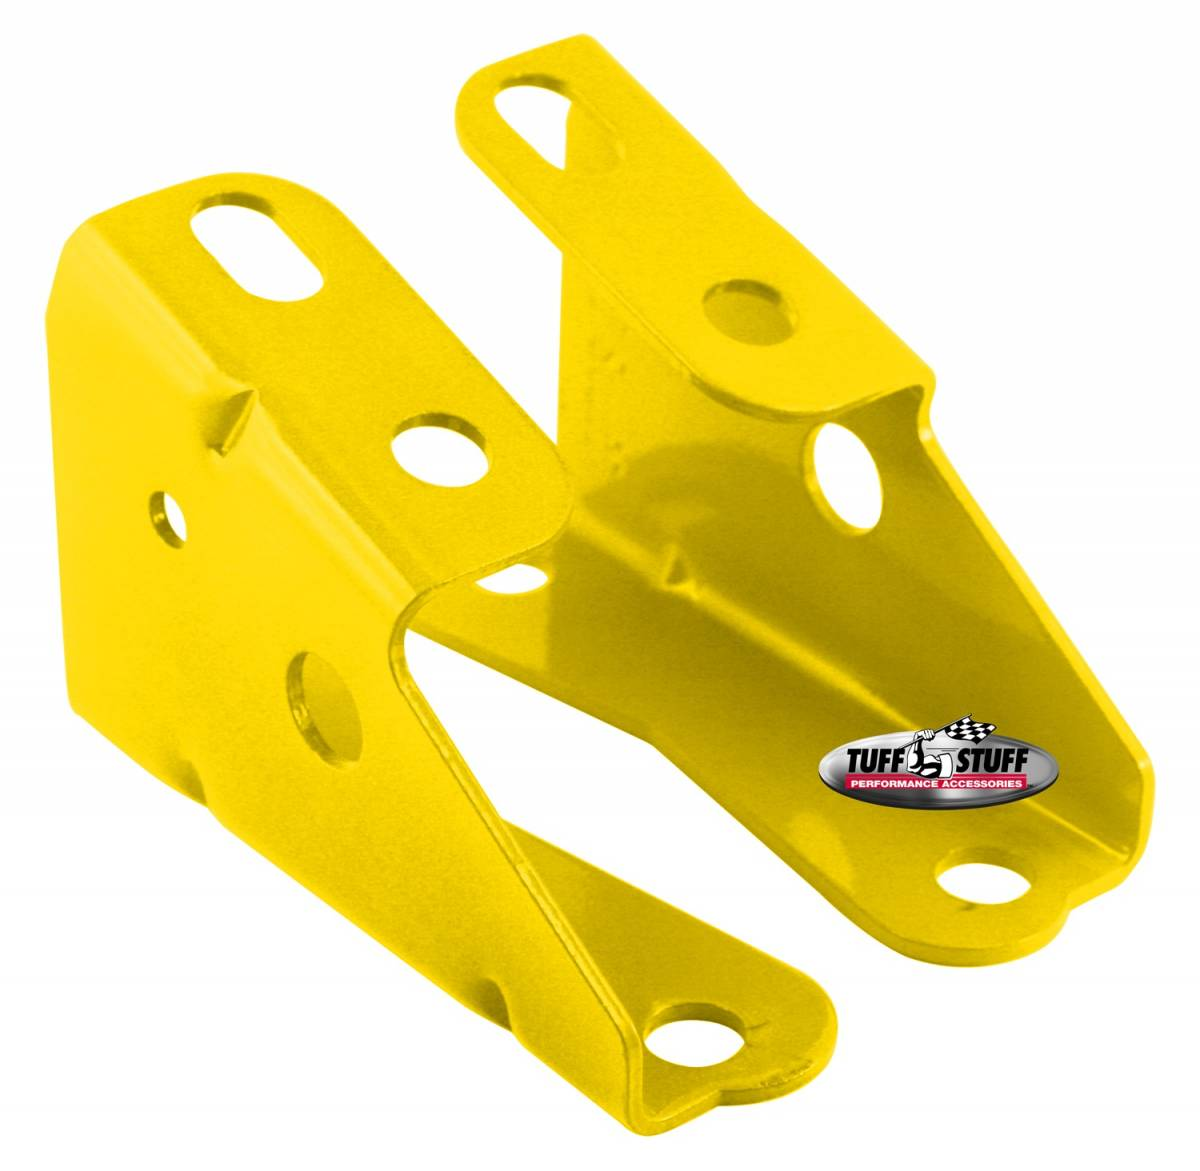 Tuff Stuff Performance - Brake Booster Brackets Incl. Left And Right Side 1967-1972 GM For Brake Booster PN[2121/2122/2123/2124/2221/2222/2223/2228/2229/2231] Yellow Powdercoat 4650BYELLOW